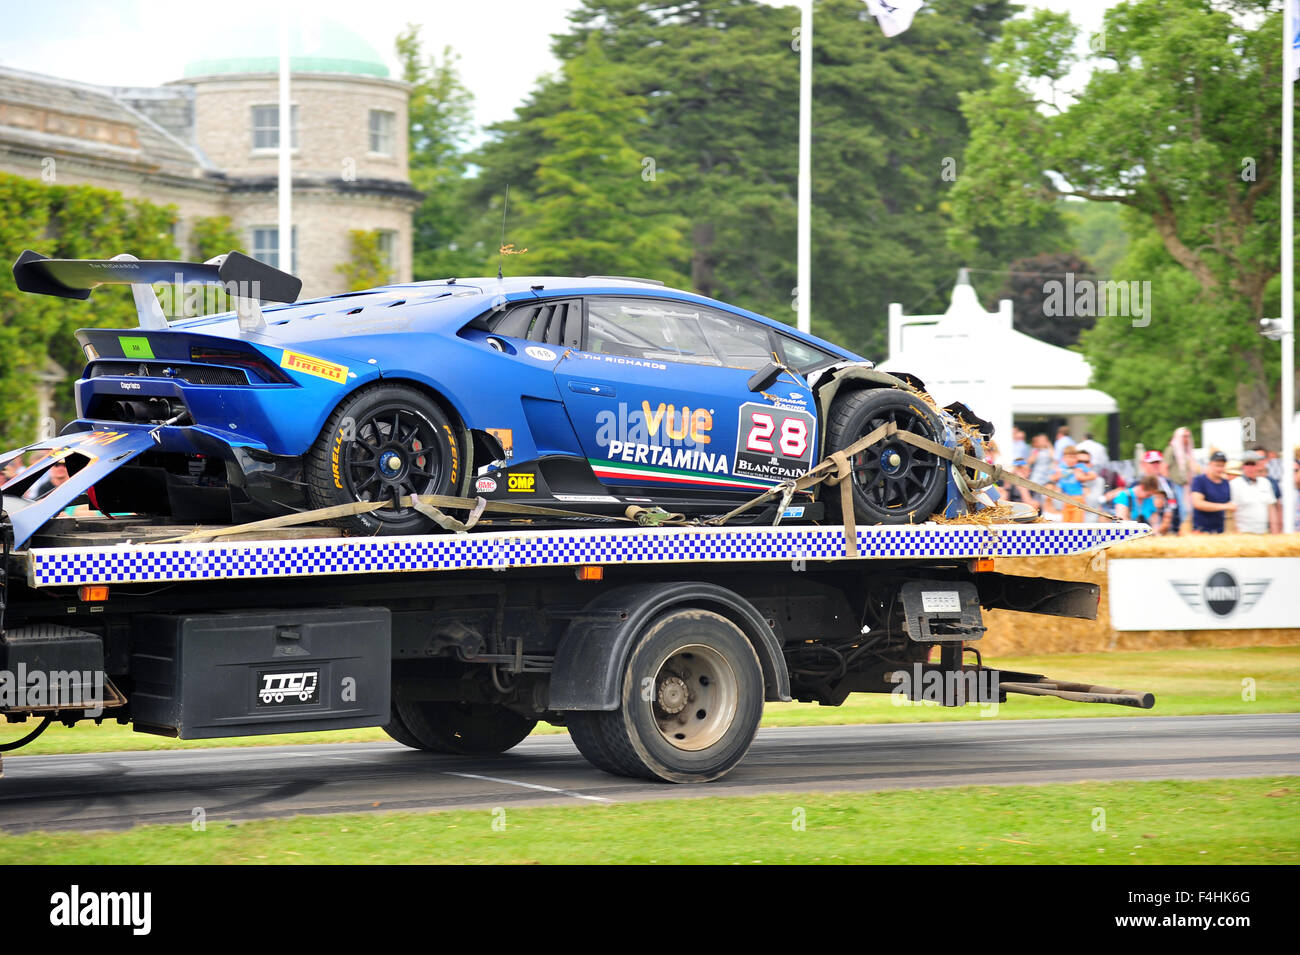 A Damaged Lamborghini Huracan Super Trofeo Transported On The Back Of A  Flatbed Truck At The